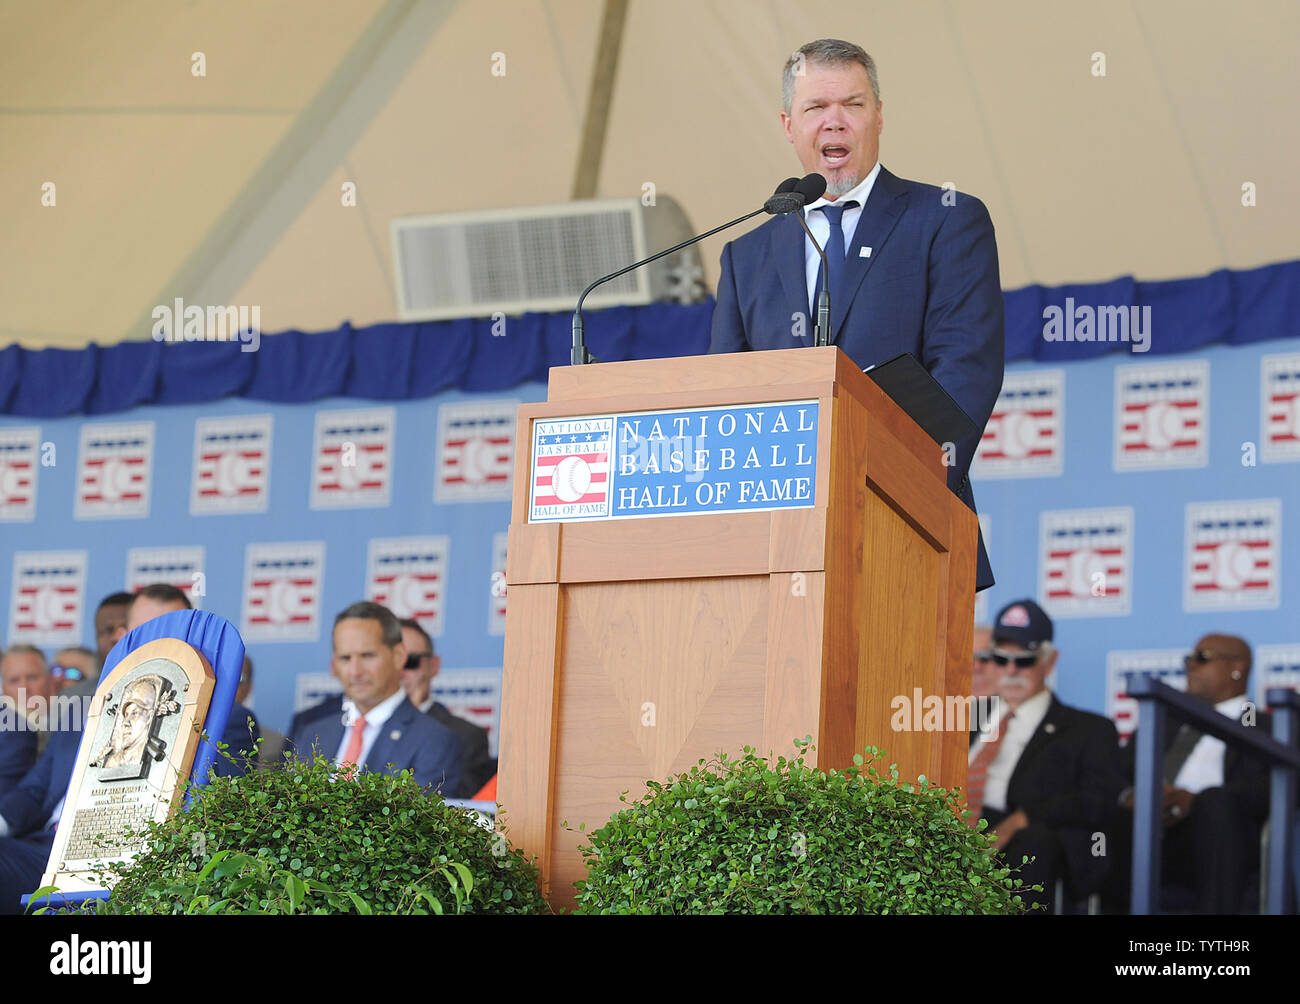 Atlanta Braves Chipper Jones delivers his Baseball Hall of Fame induction speech at the Clark Sports Center in Cooperstown, NY on July 29, 2018.  A record 60 Hall of Famers are scheduled to be in Central New York to honor Vladimir Guerrero, Trevor Hoffman, Chipper Jones, Jack Morris, Jim Thome and Alan Trammell at the National Baseball Hall of Fame and Museum during Hall of Fame Weekend on July 27-30.     Photo by George Napolitano/UPI                                                                                                   . - Stock Image